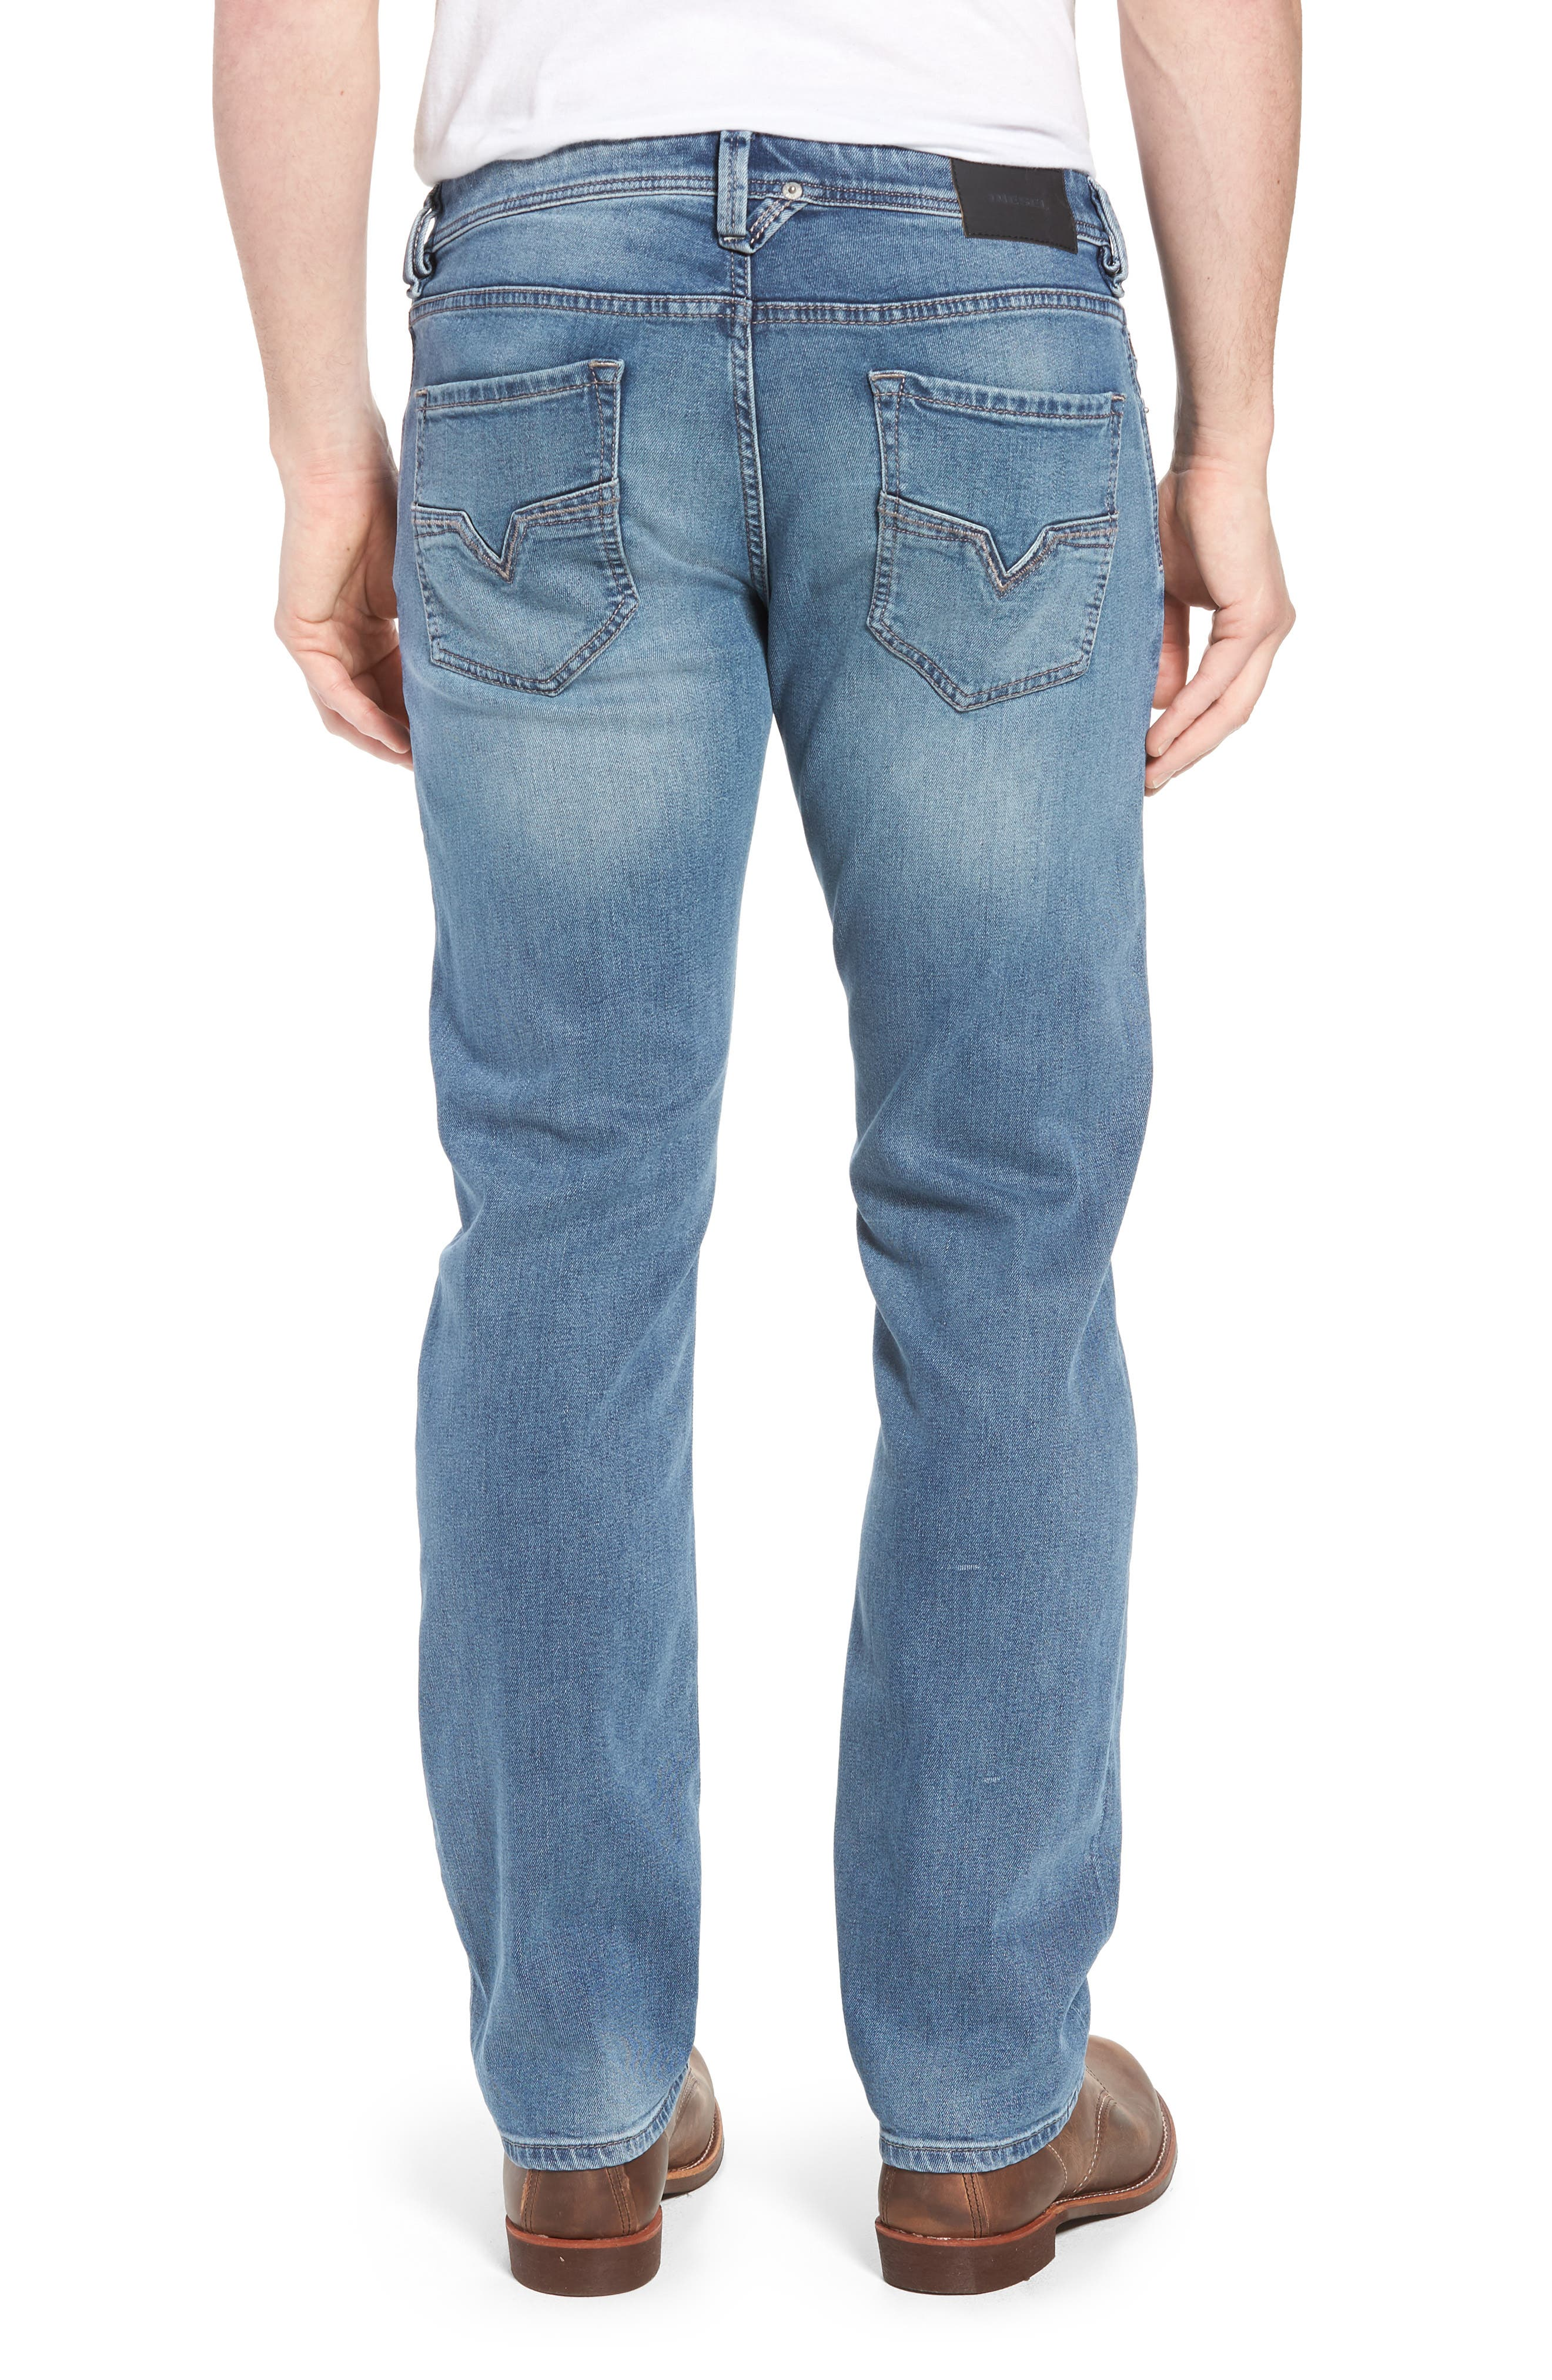 Larkee Relaxed Fit Jeans,                             Alternate thumbnail 2, color,                             084Rb